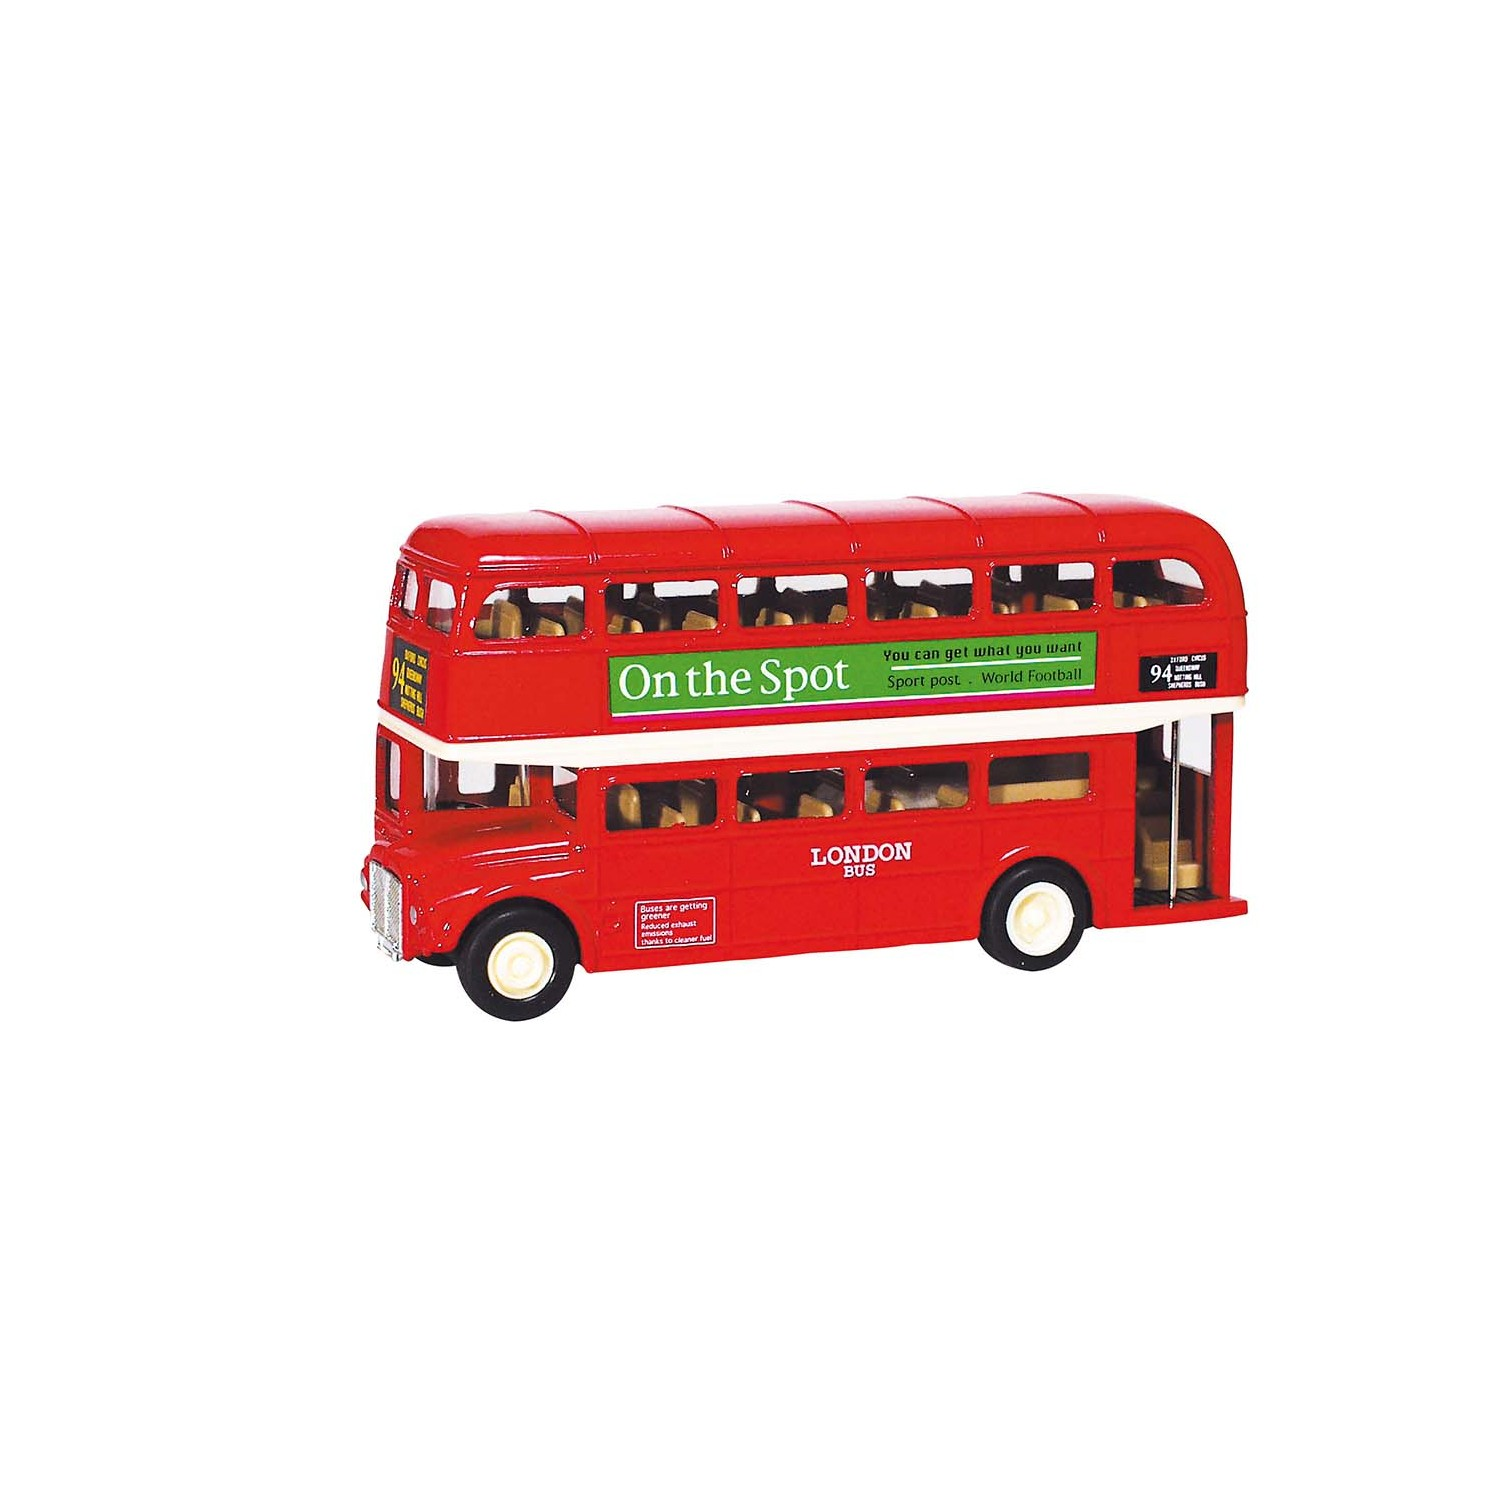 goki london bus aus spritzgu l 12 cm r ckzugmotor von goki g nstig bei mariposa toys kaufen. Black Bedroom Furniture Sets. Home Design Ideas